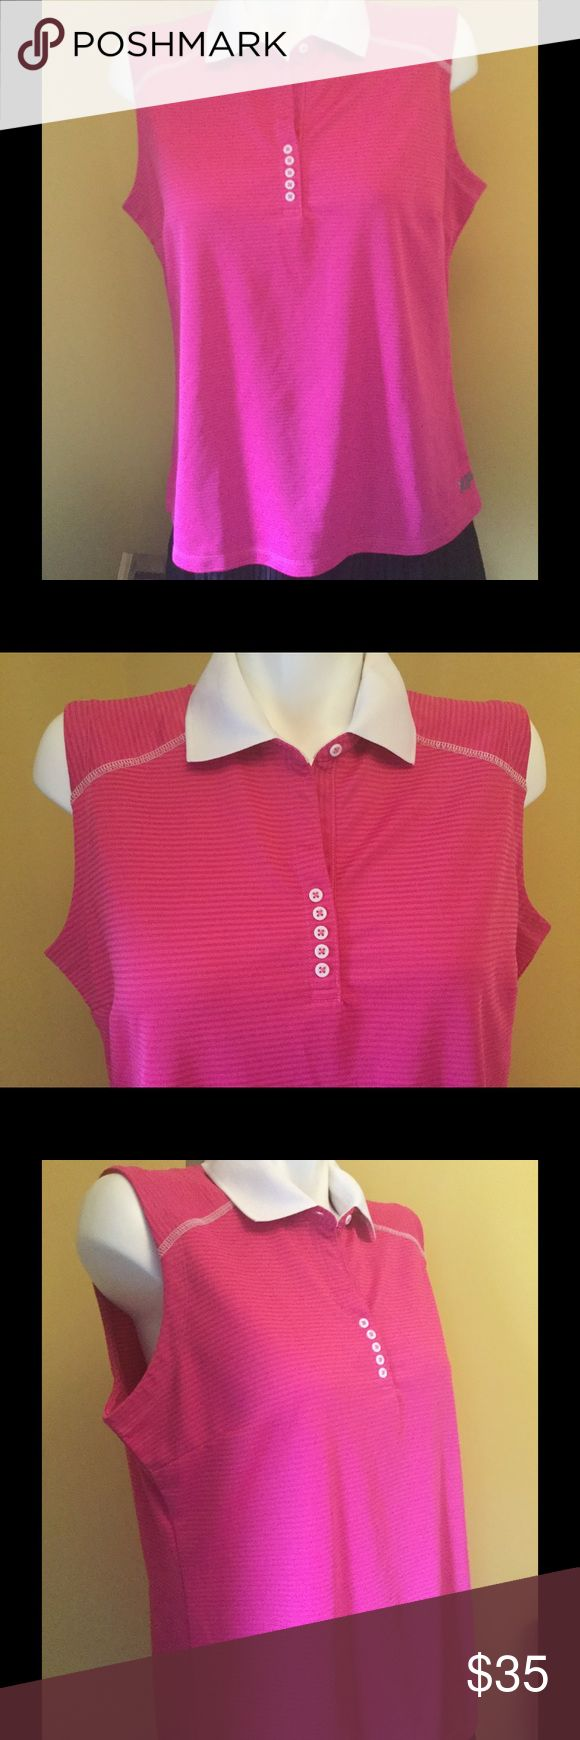 "Cute Pink Stripe Golf Shirt Cute Pink Stripe Golf Shirt Con-LL229-B3  Laying Flat Chest measurement across 21"" Length from shoulder to hem 26""  Cute as can be! ""Freshly laundered.""                               ♡GOD BLESS♡                    ☆BUNDLE AND SAVE 5%☆              ♡ASK I WILL REPLY PROMPTLY♡       ☆SHARE & FOLLOW I WILL DO THE SAME☆    ☆REASONABLE OFFER'S ALWAYS WELCOMED☆ Bermuda Sands Tops Blouses"